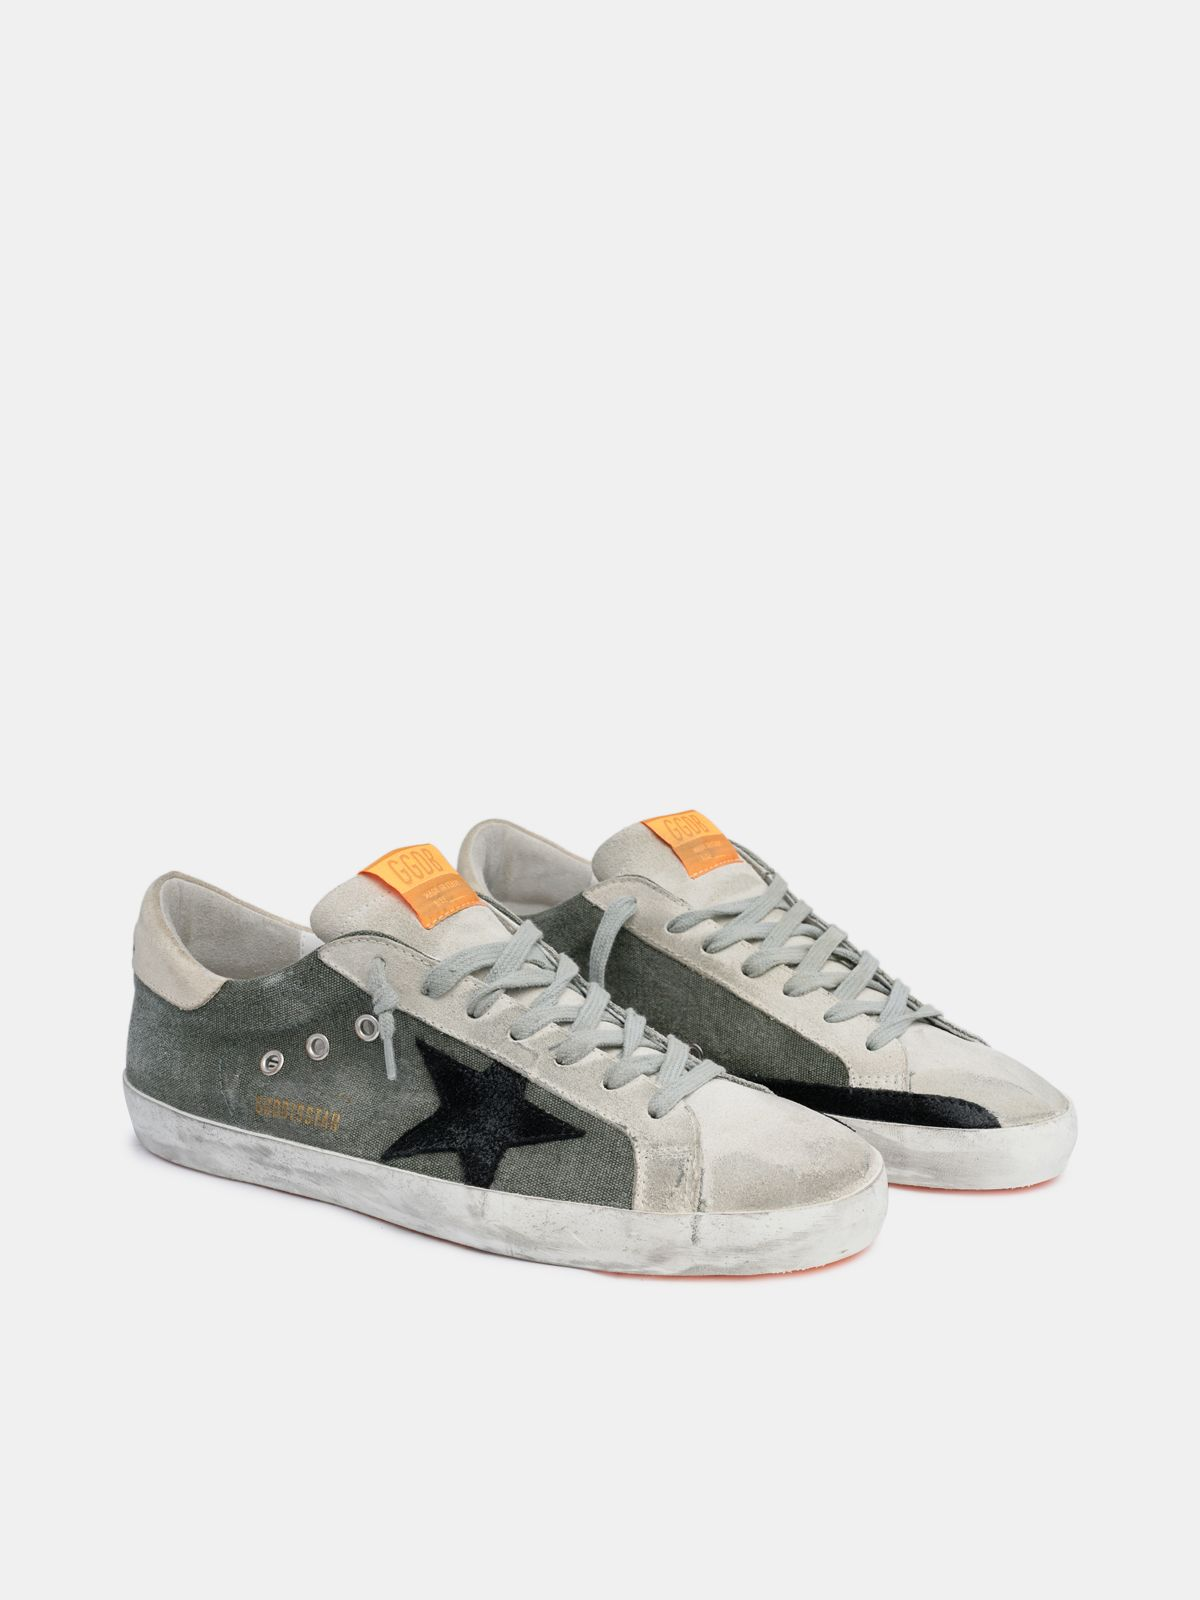 Golden Goose - Super-Star sneakers in army green canvas in